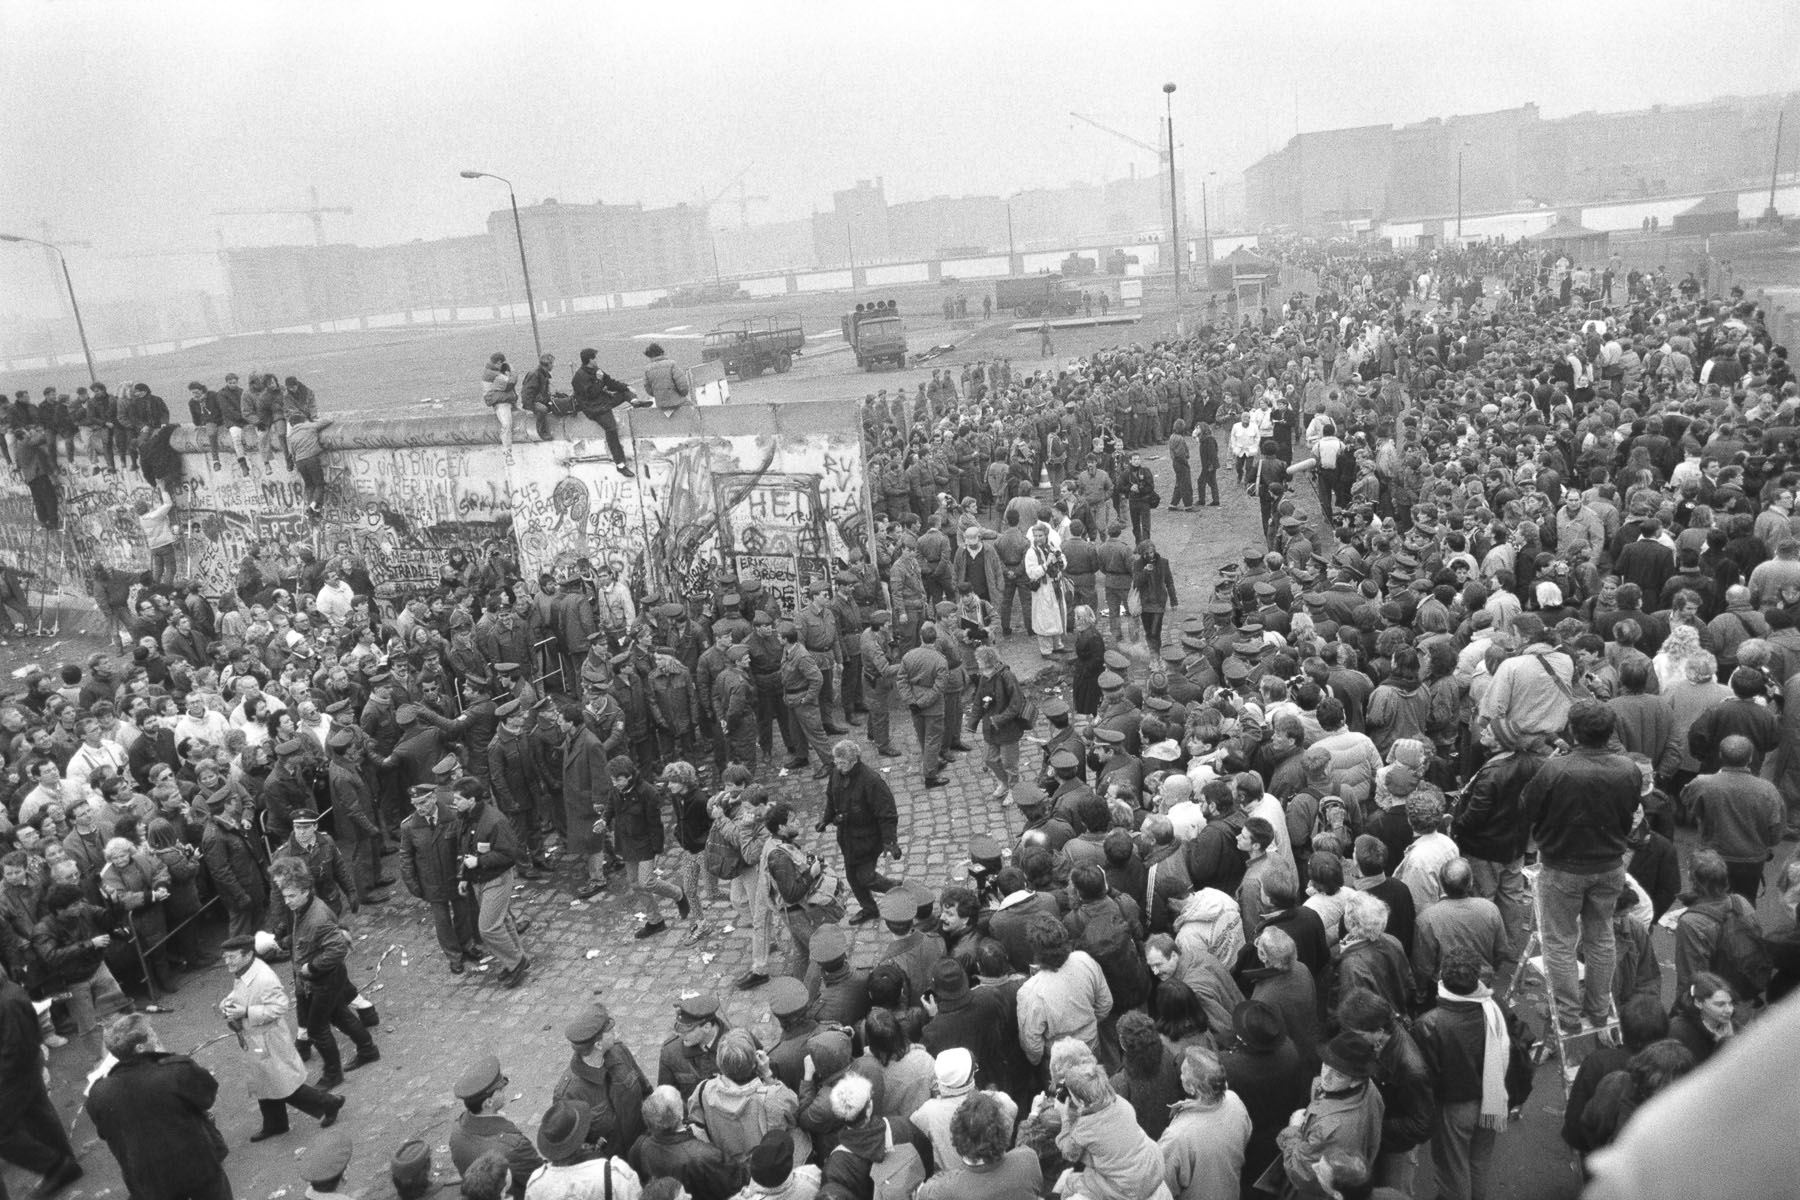 East Berliners cross an opening section of the Berlin Wall by Potzdamer Platz on November 11, 1989